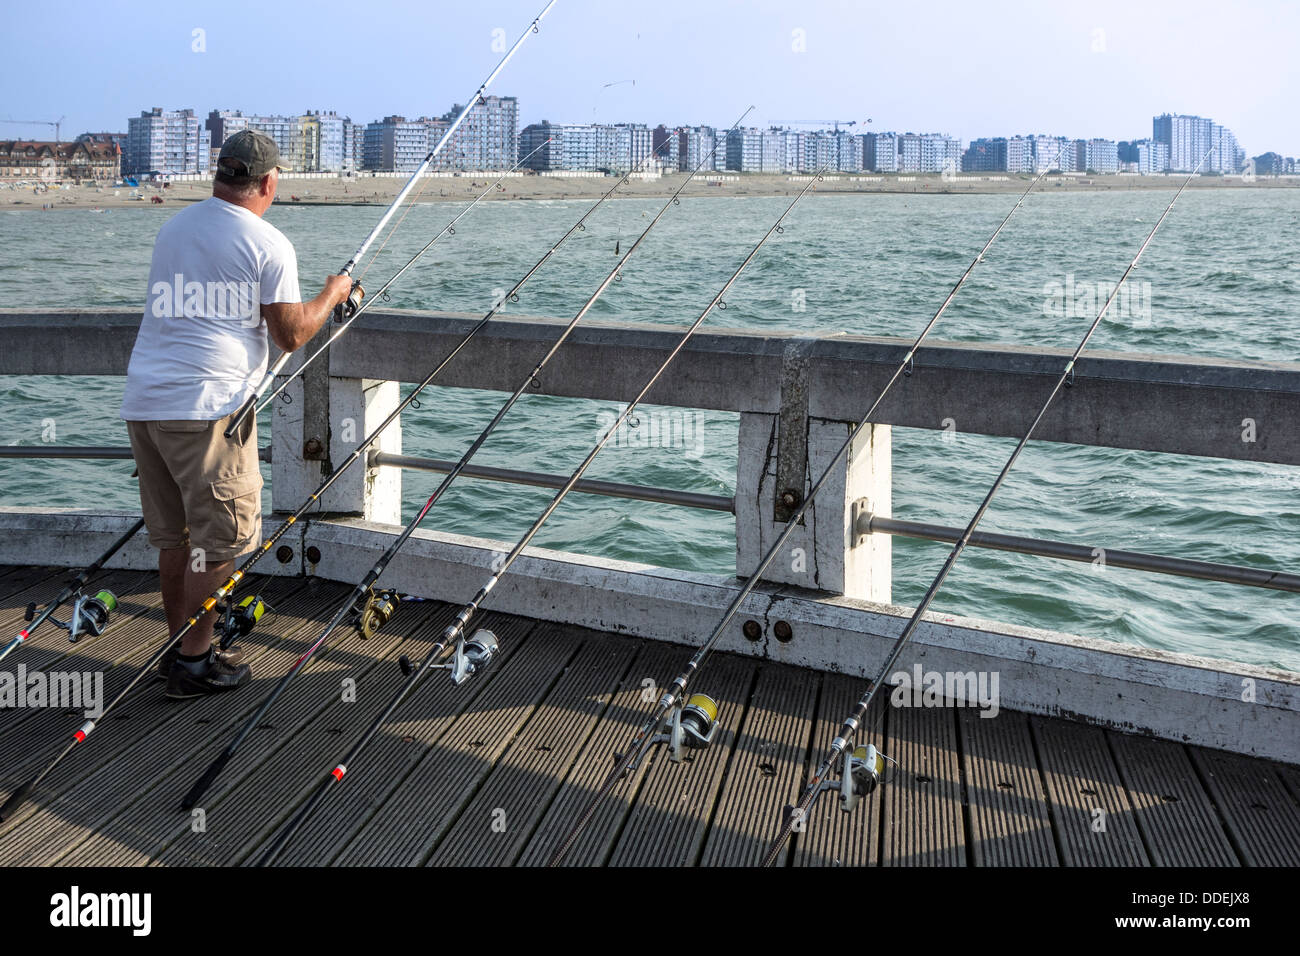 Angler fishing with several fishing rods from pier along the North Sea coast at Nieuwpoort / Nieuport, Belgium - Stock Image